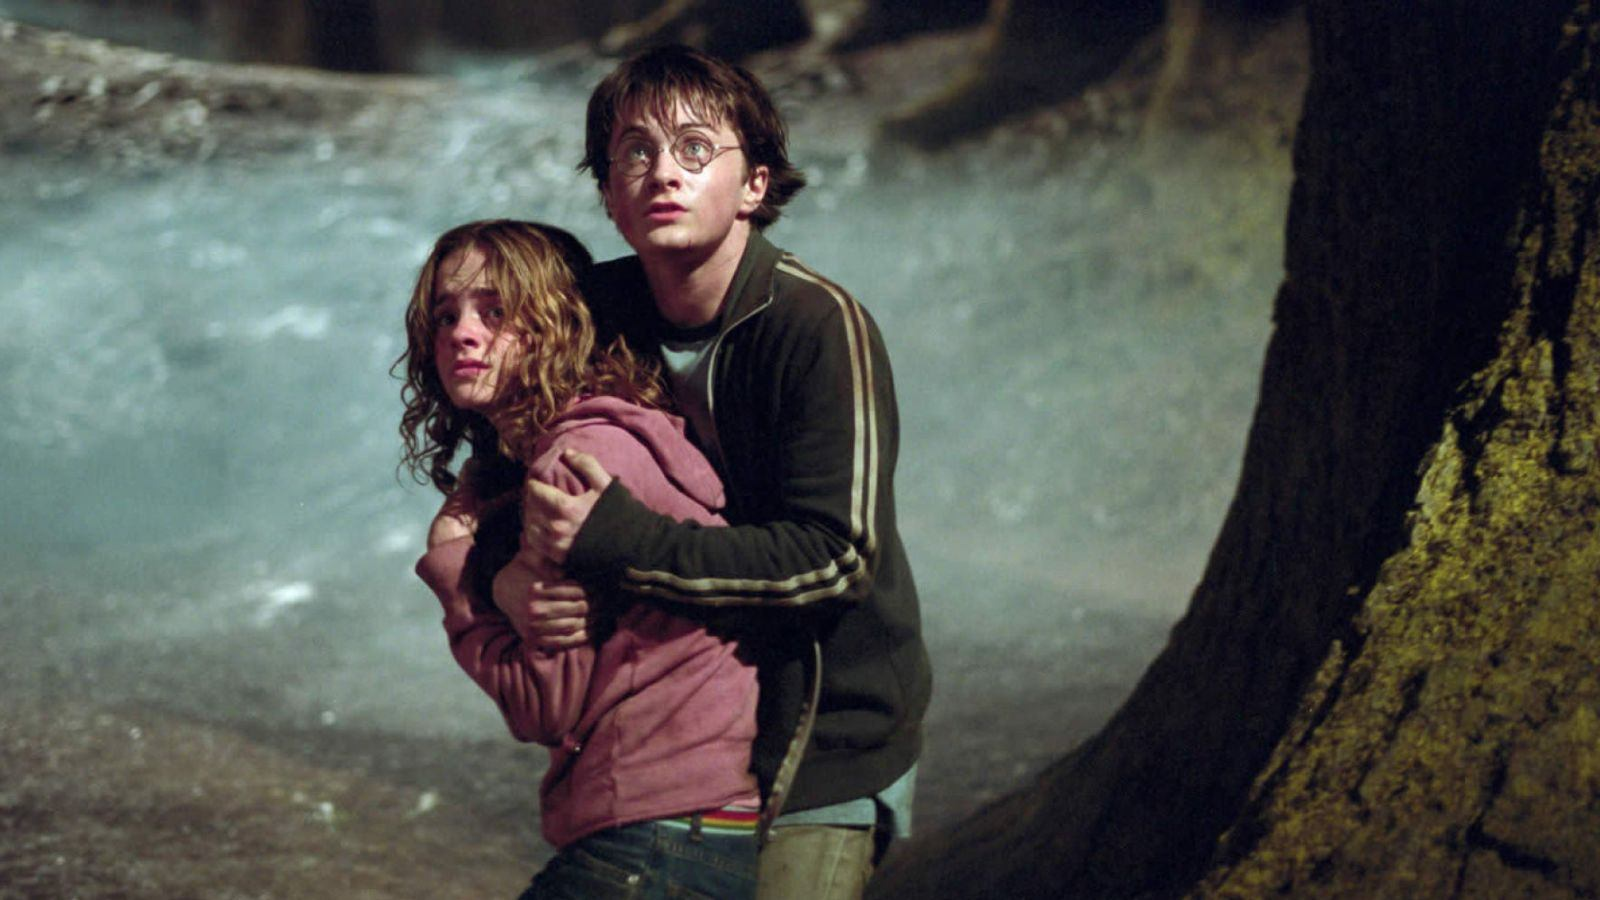 Check Out the Biggest Plot Holes in Movies Everyone Loves